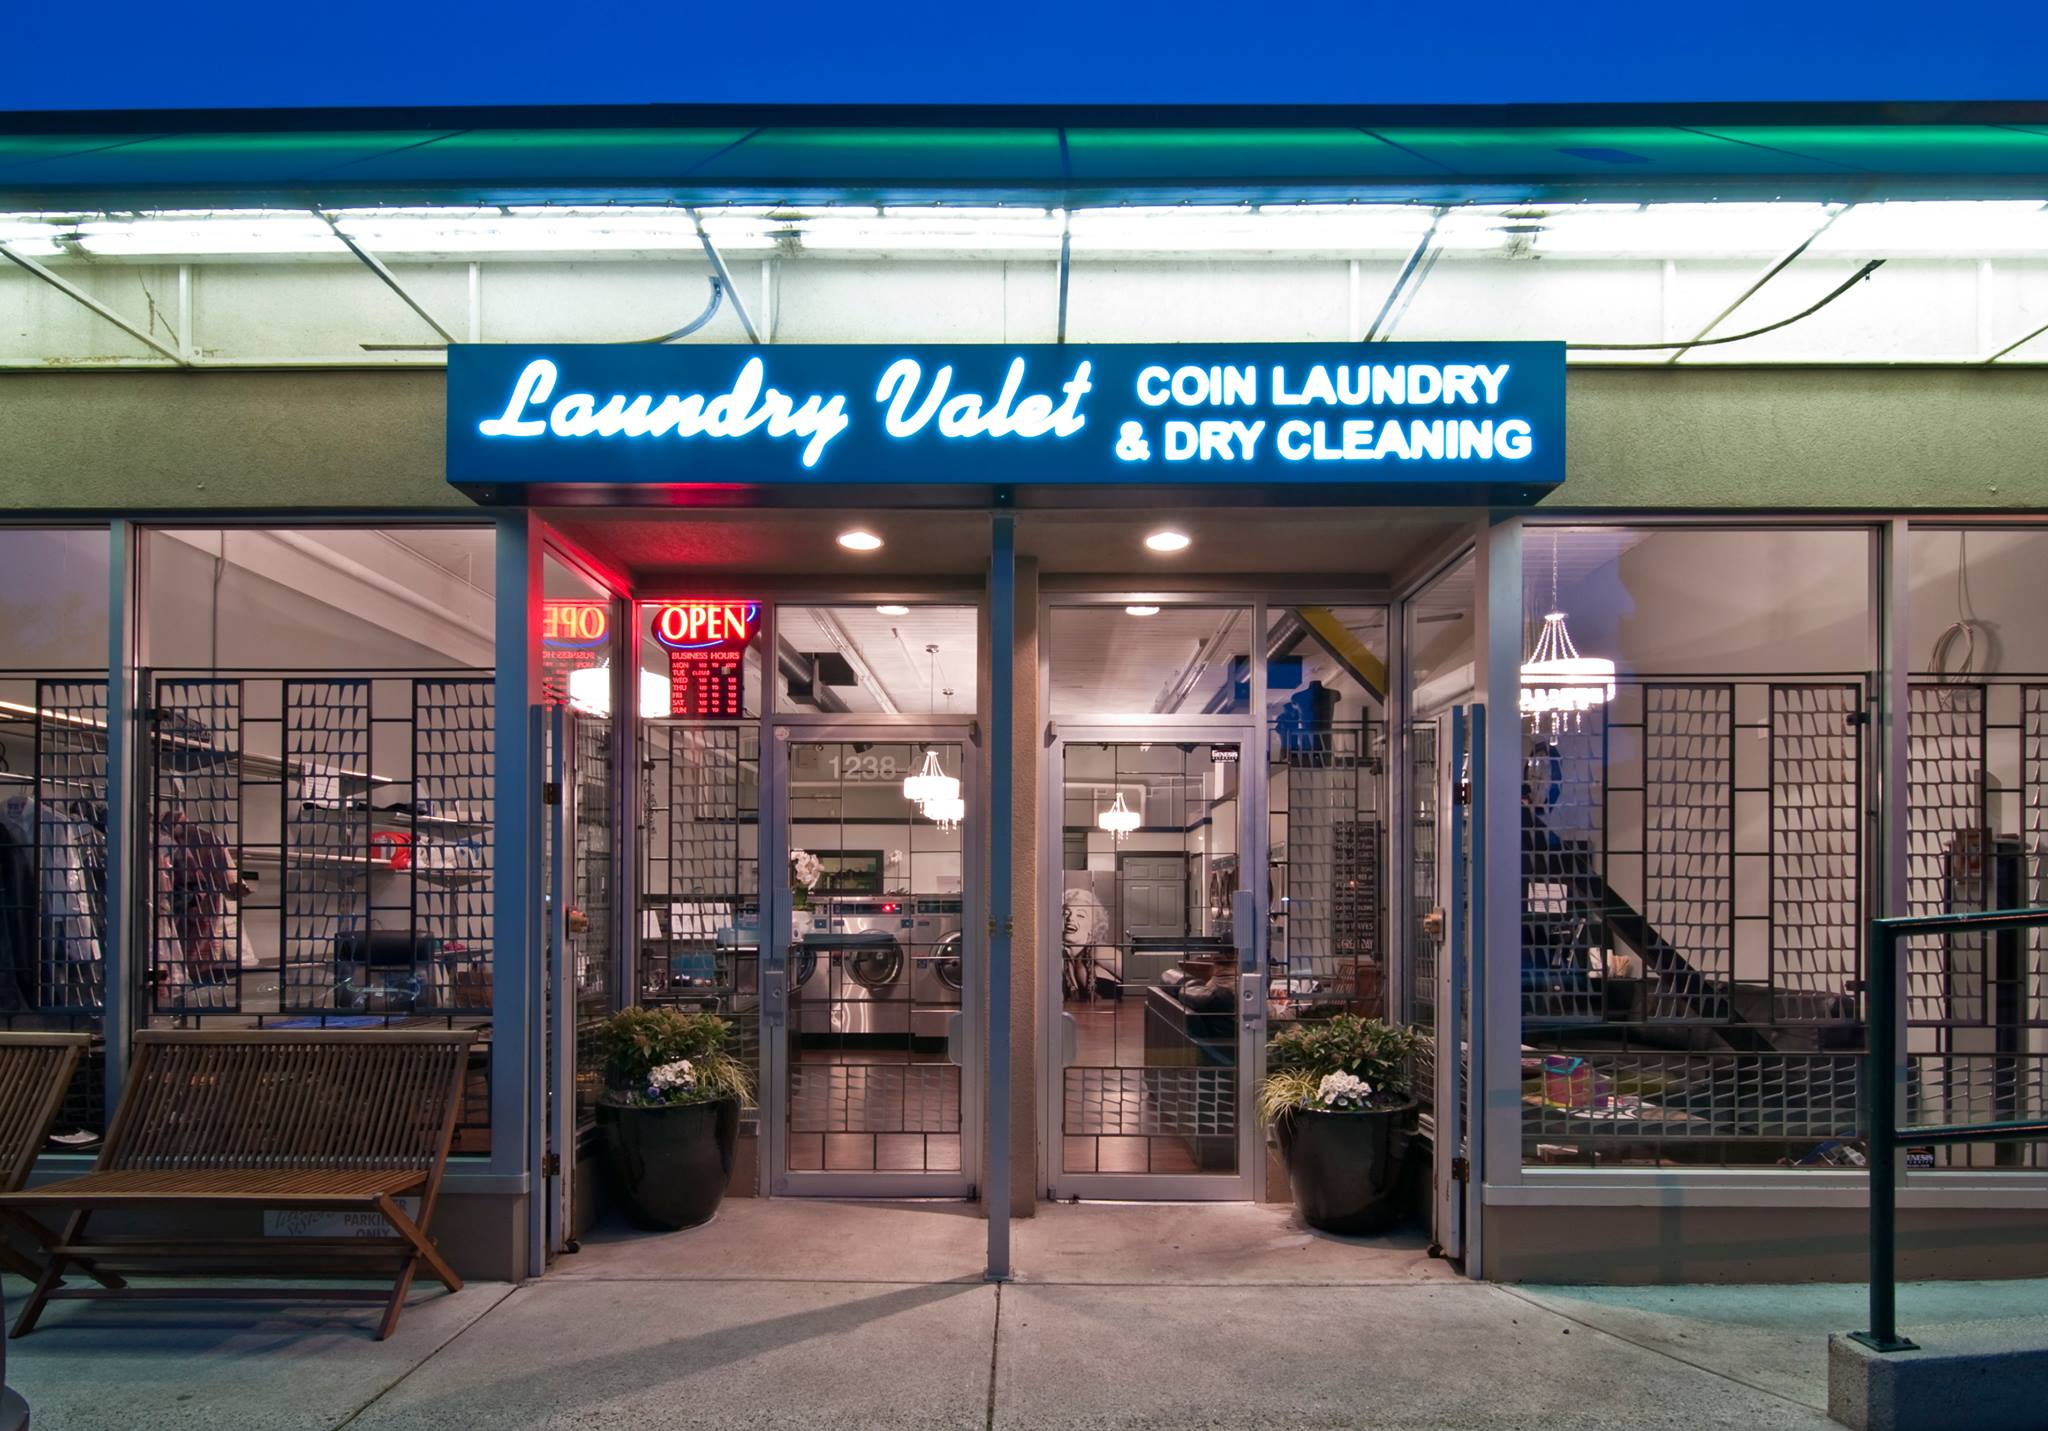 Image: Laundry Valet / Facebook